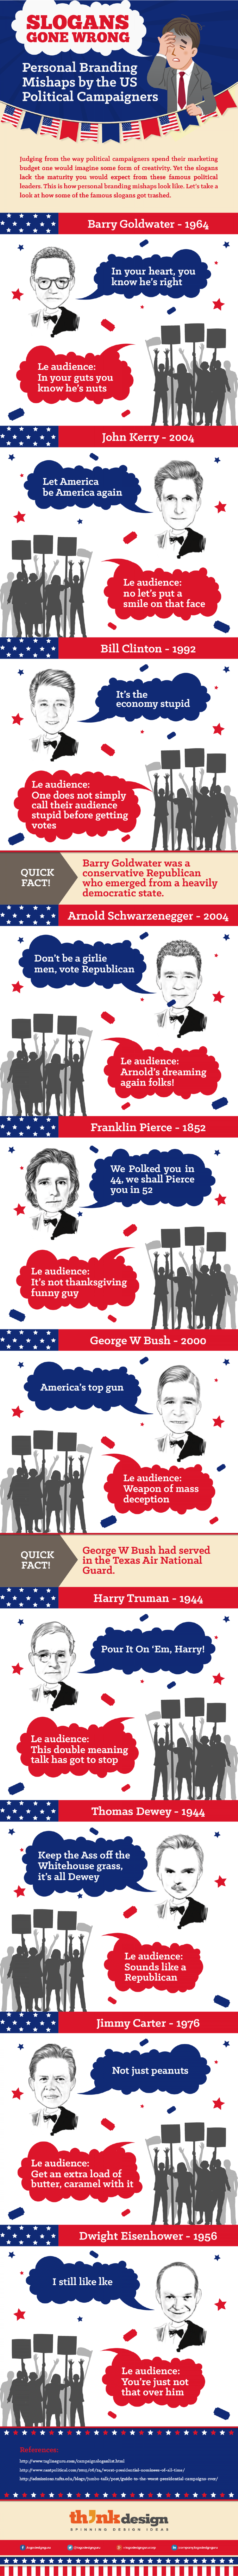 Slogans Gone Wrong! Personal Branding Mishaps by the US Political Campaigners  Infographic